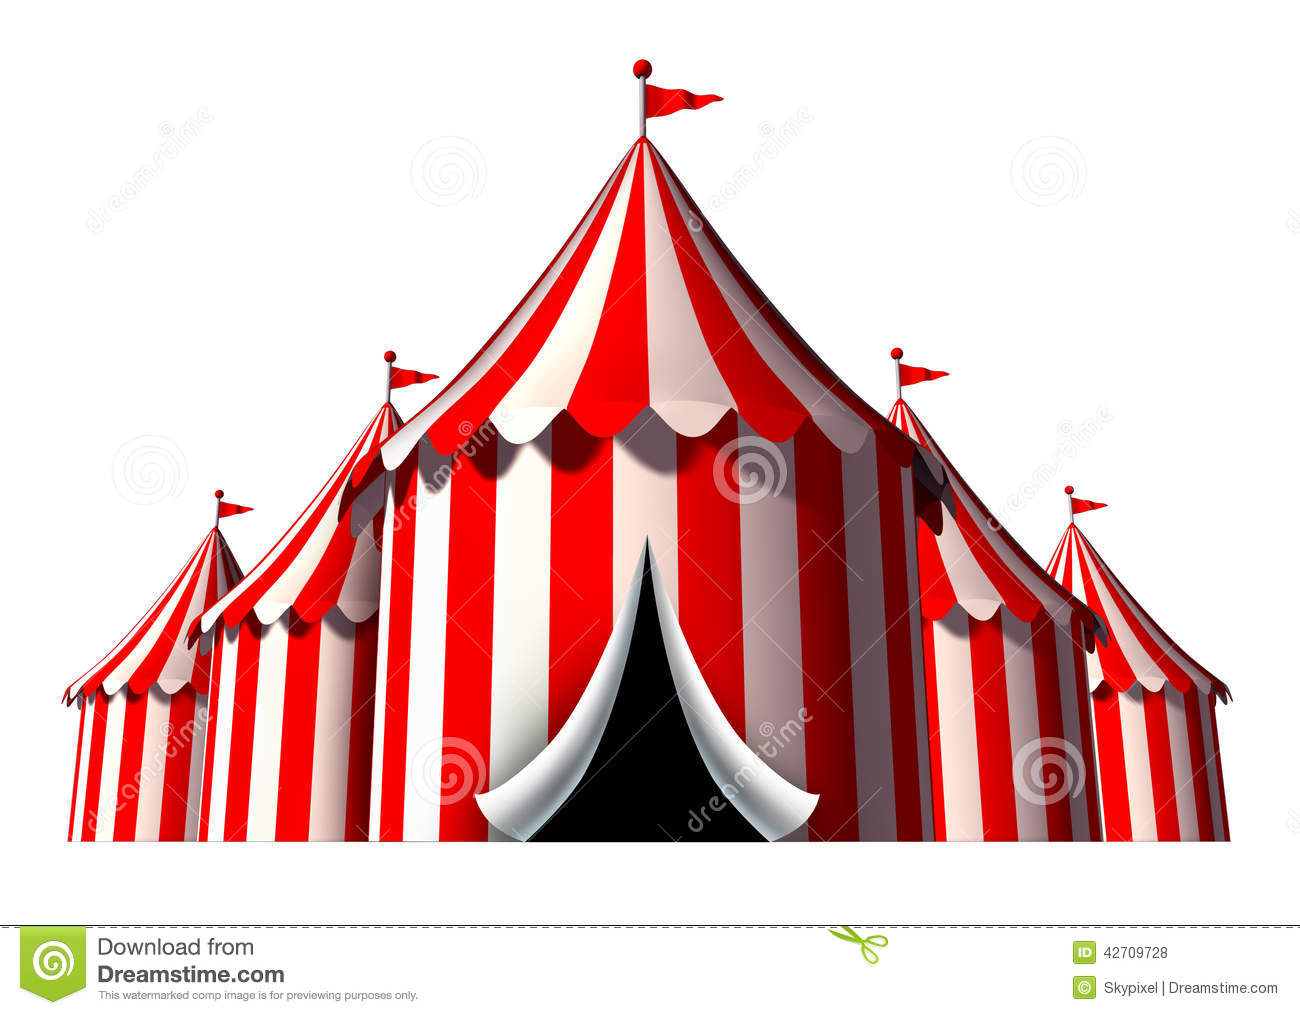 Circus Tent  sc 1 st  Dreamstime.com & Circus Tent stock illustration. Illustration of open - 42709728